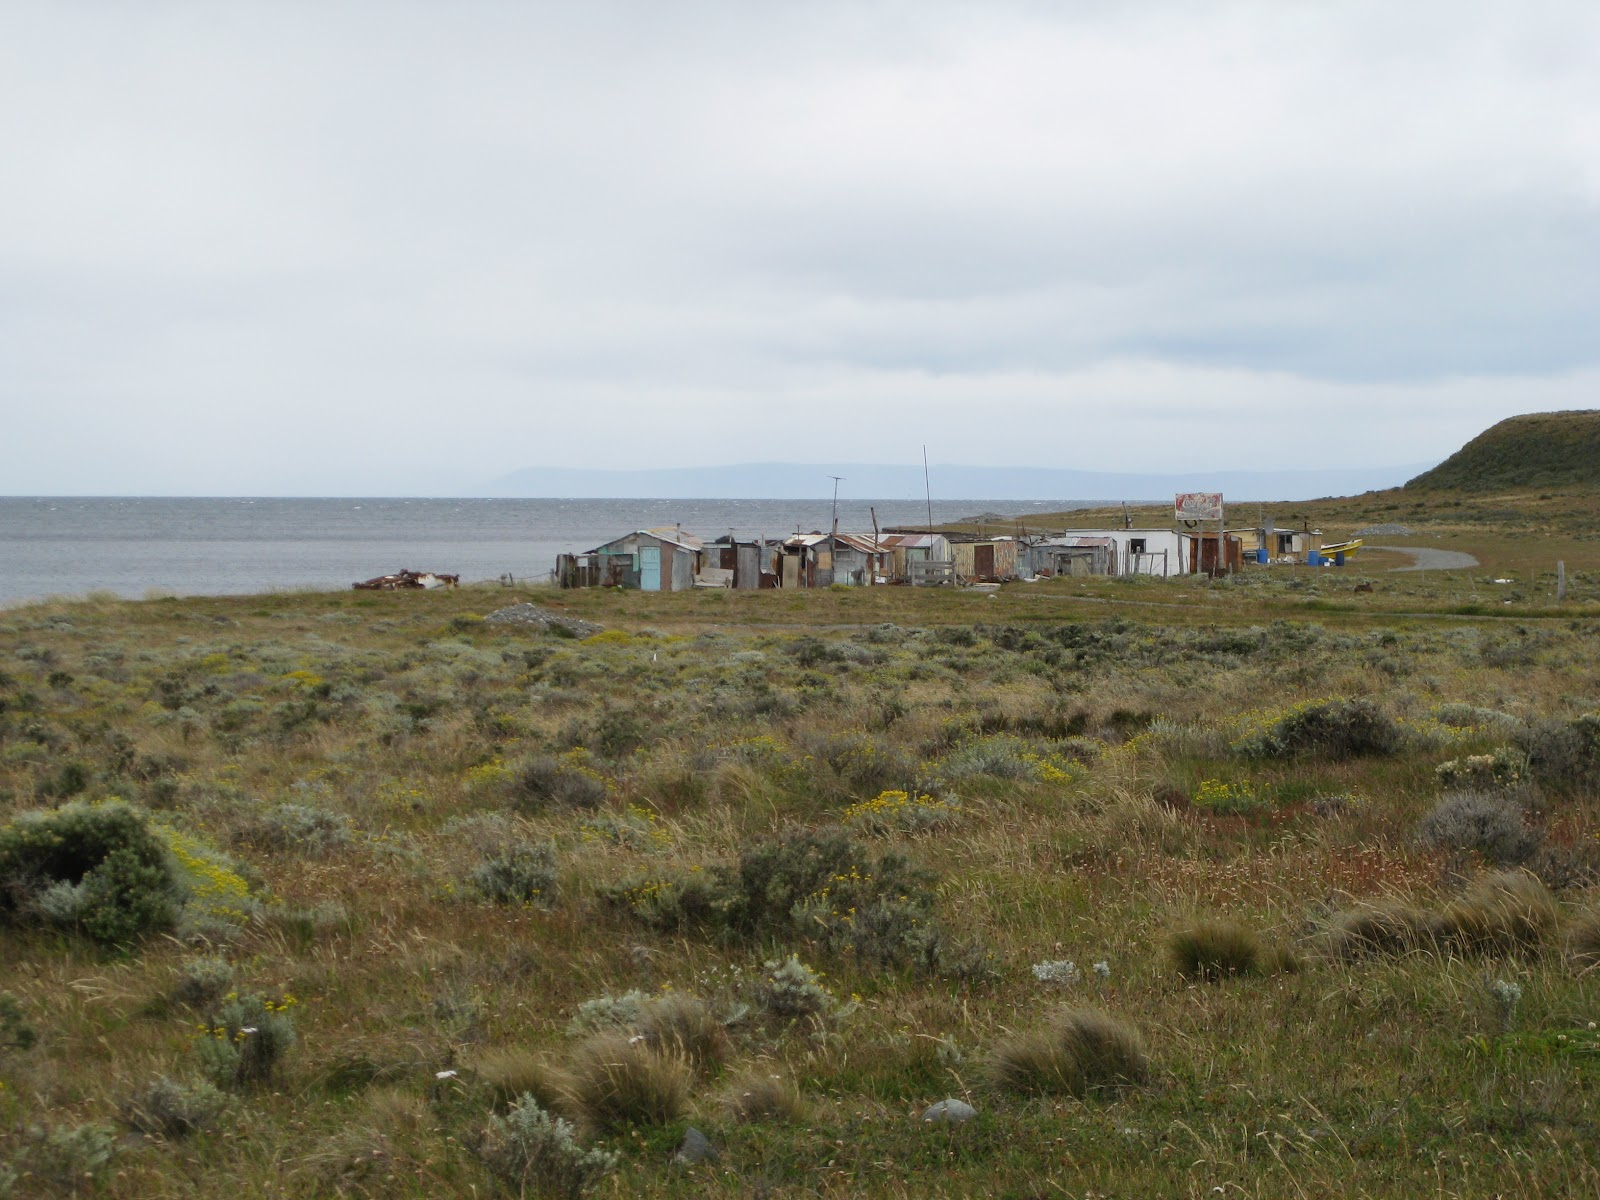 Fishing huts - hard to say if they were occupied